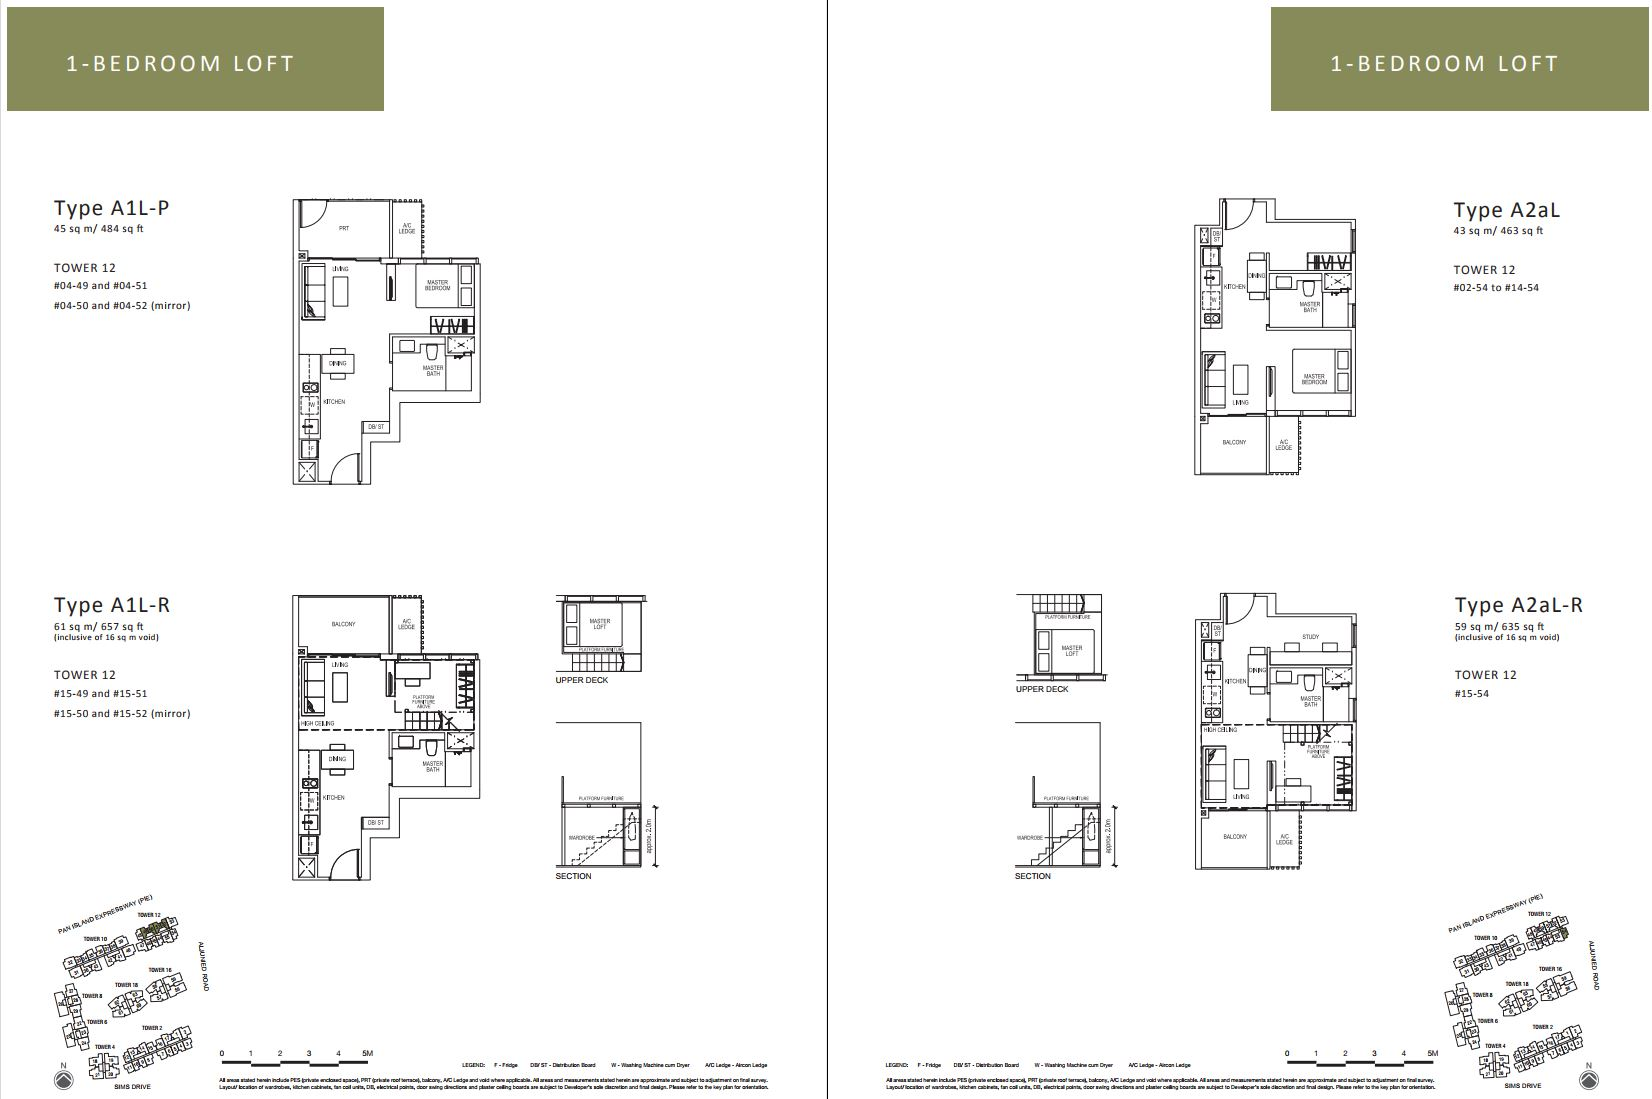 Sims Urban Oasis FloorPlan - 1 Bedroom Loft_2